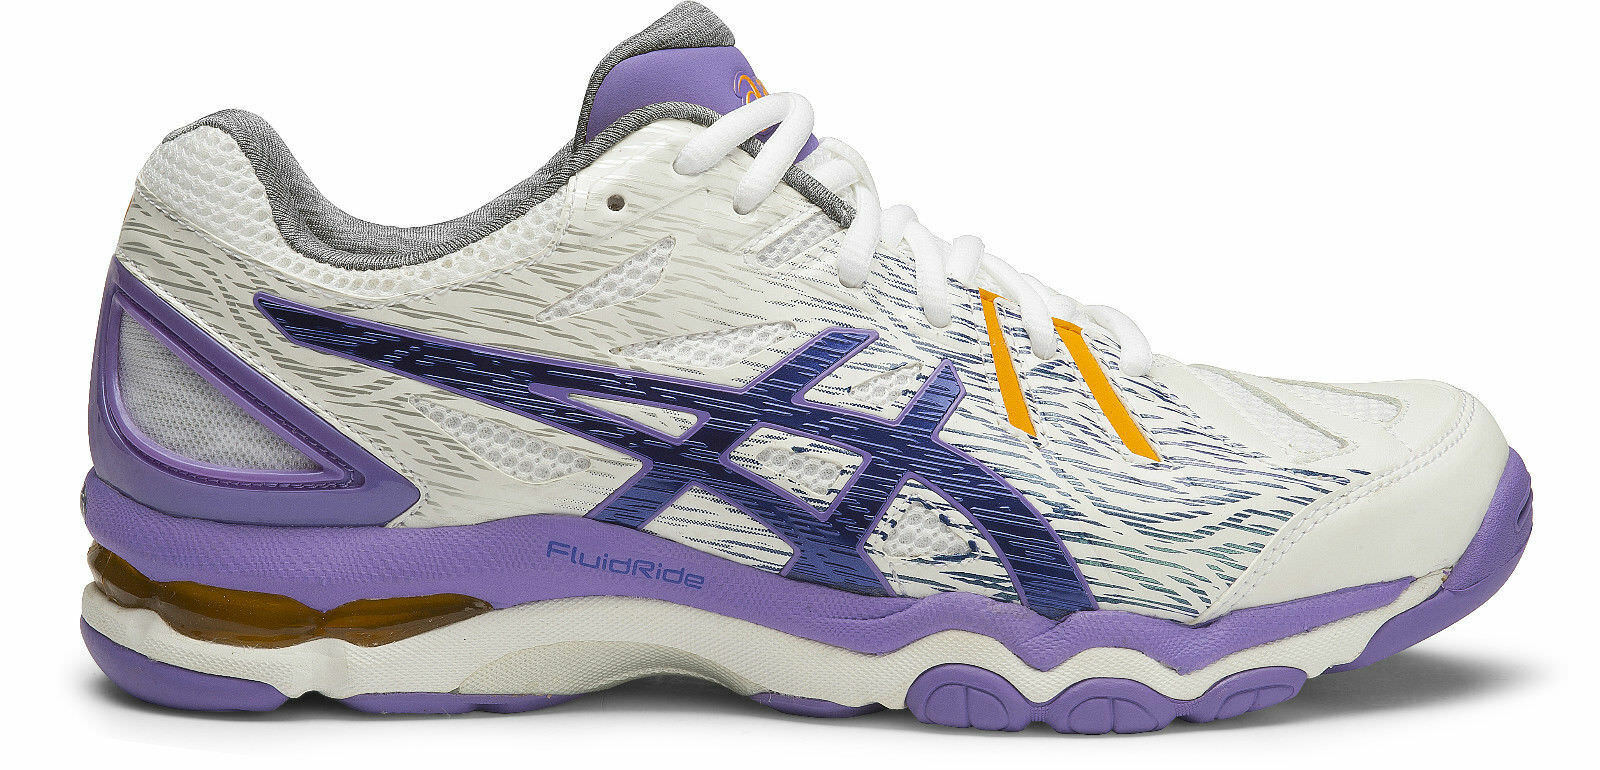 SUPER SPECIAL || Asics Gel Netburner Super 6 Womens Netball Shoes Price reduction Price reduction Seasonal price cuts, discount benefits